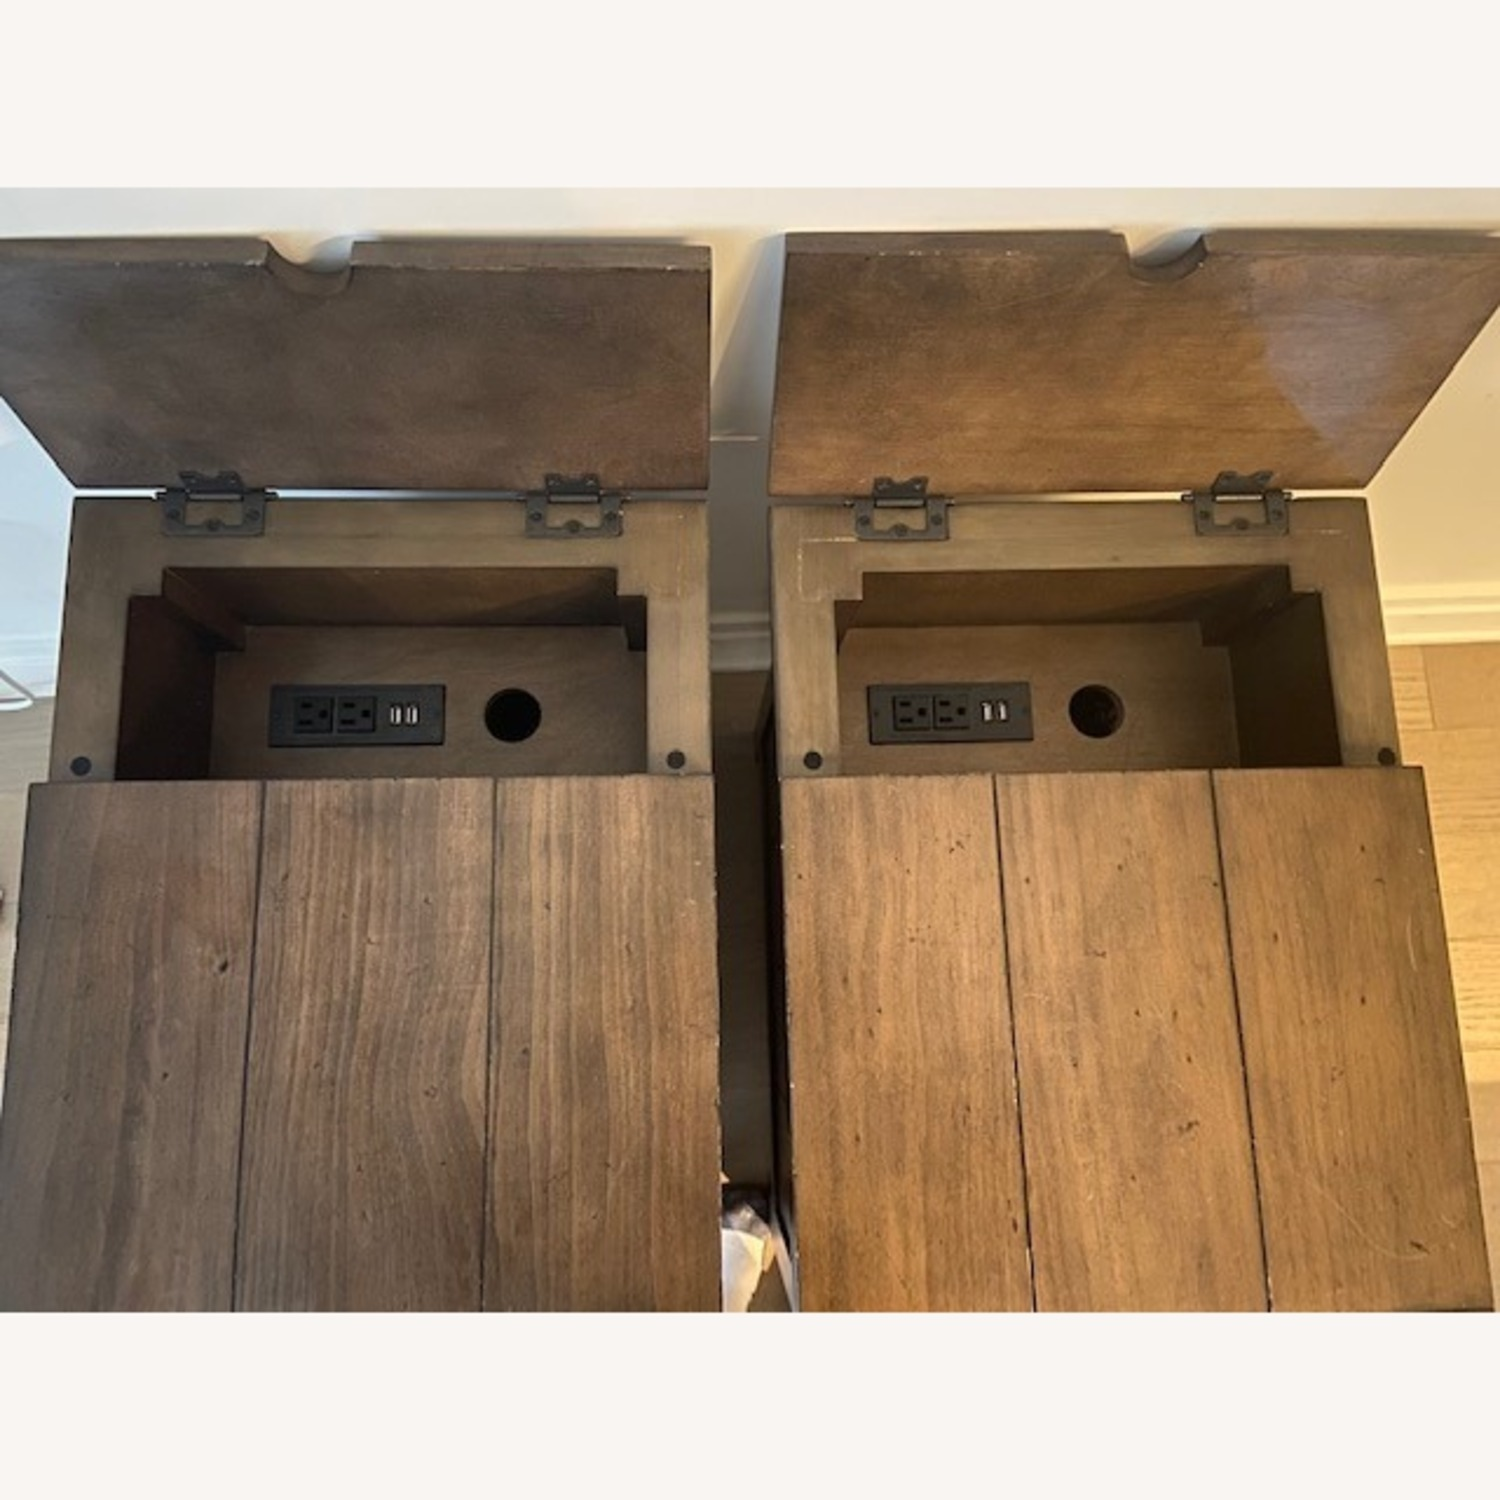 broyhill end tables with built in outlets and usb